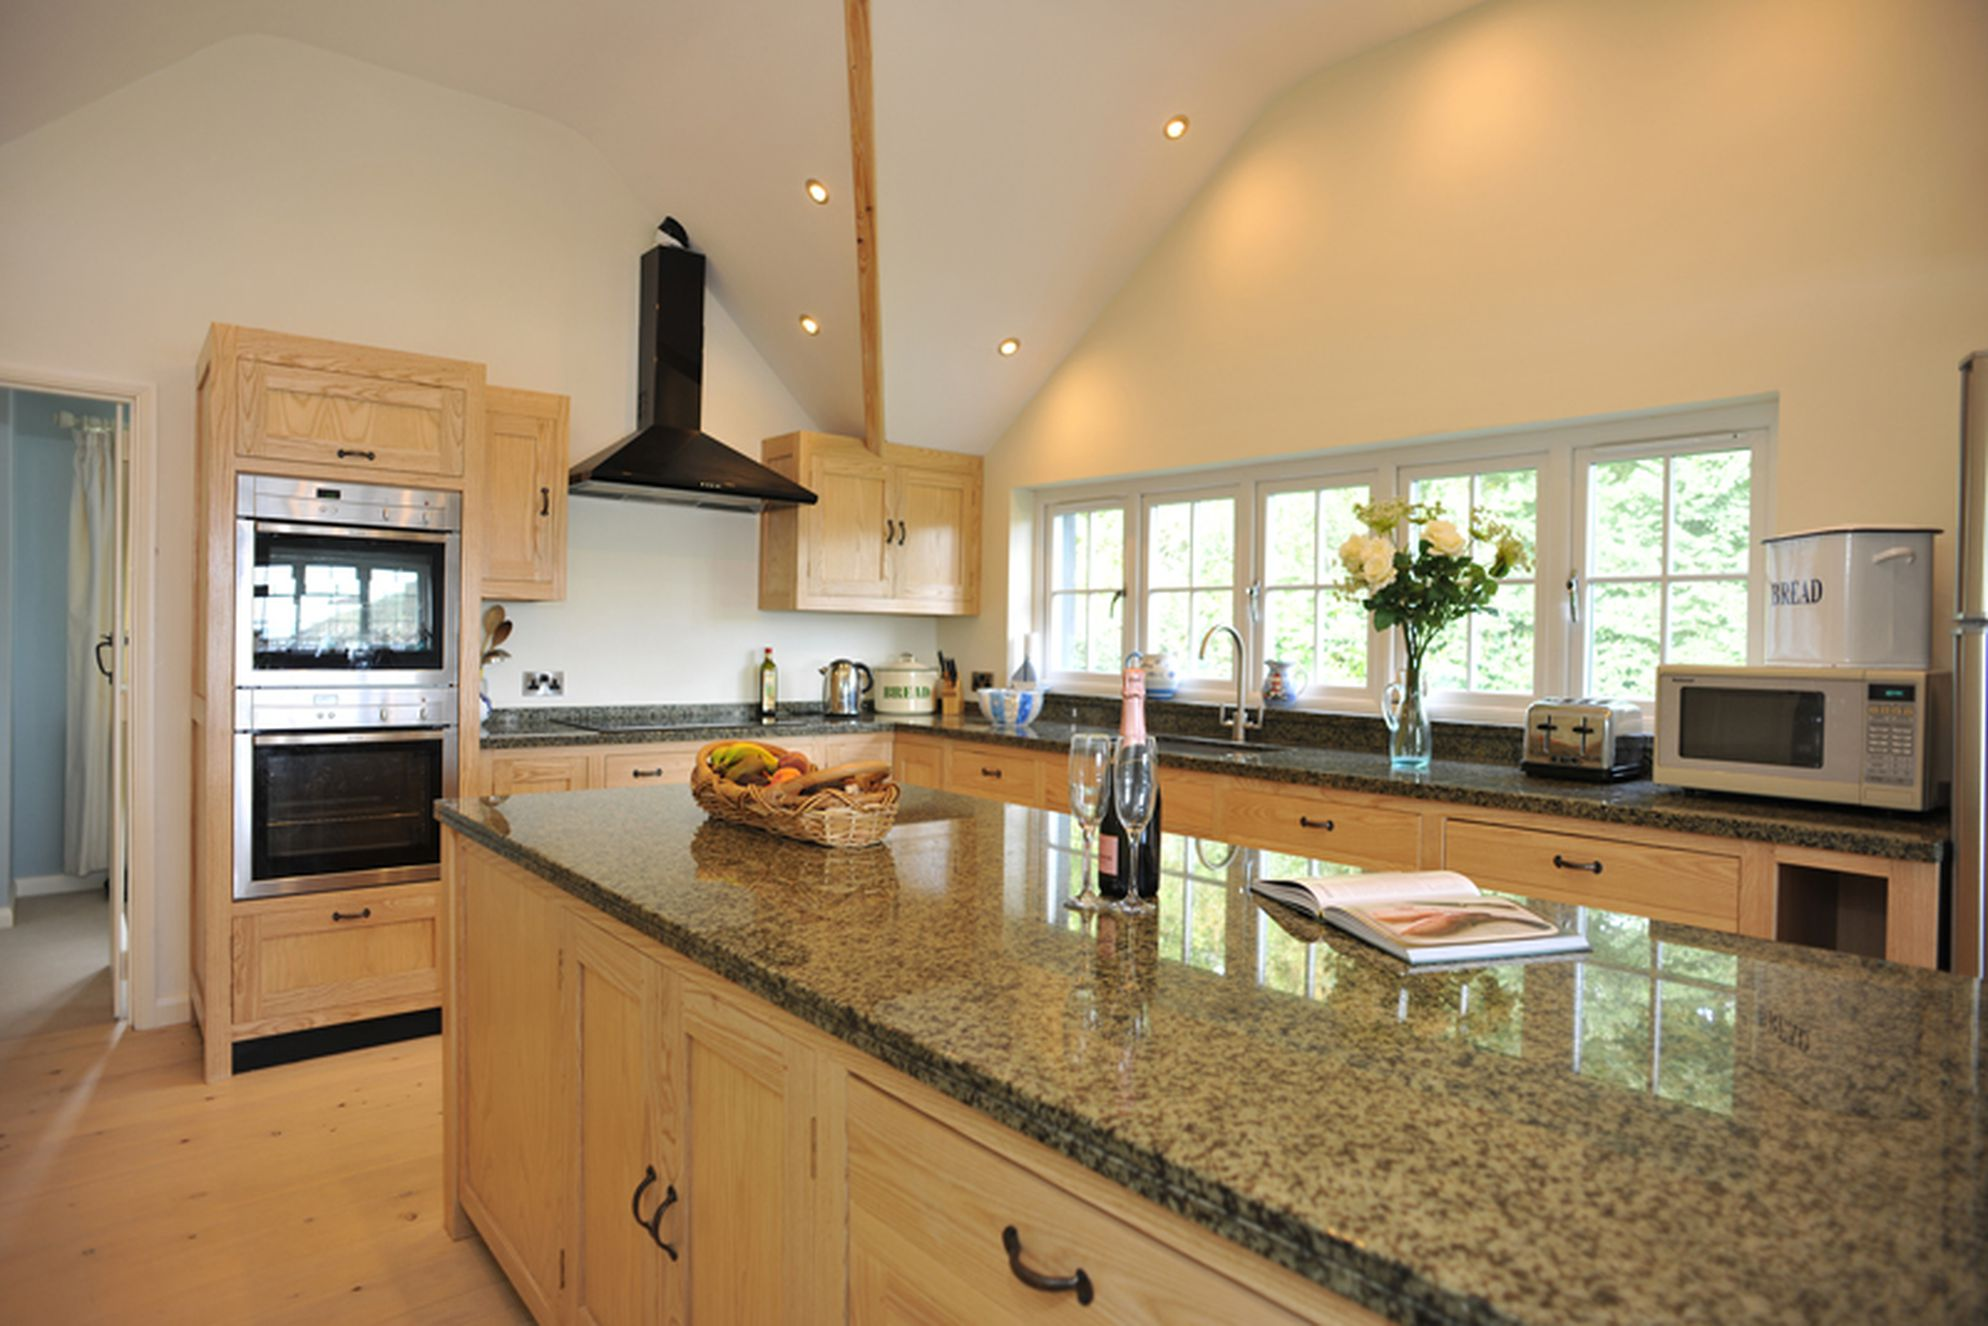 Large modern kitchen with a kitchen island and flowers on the worktop